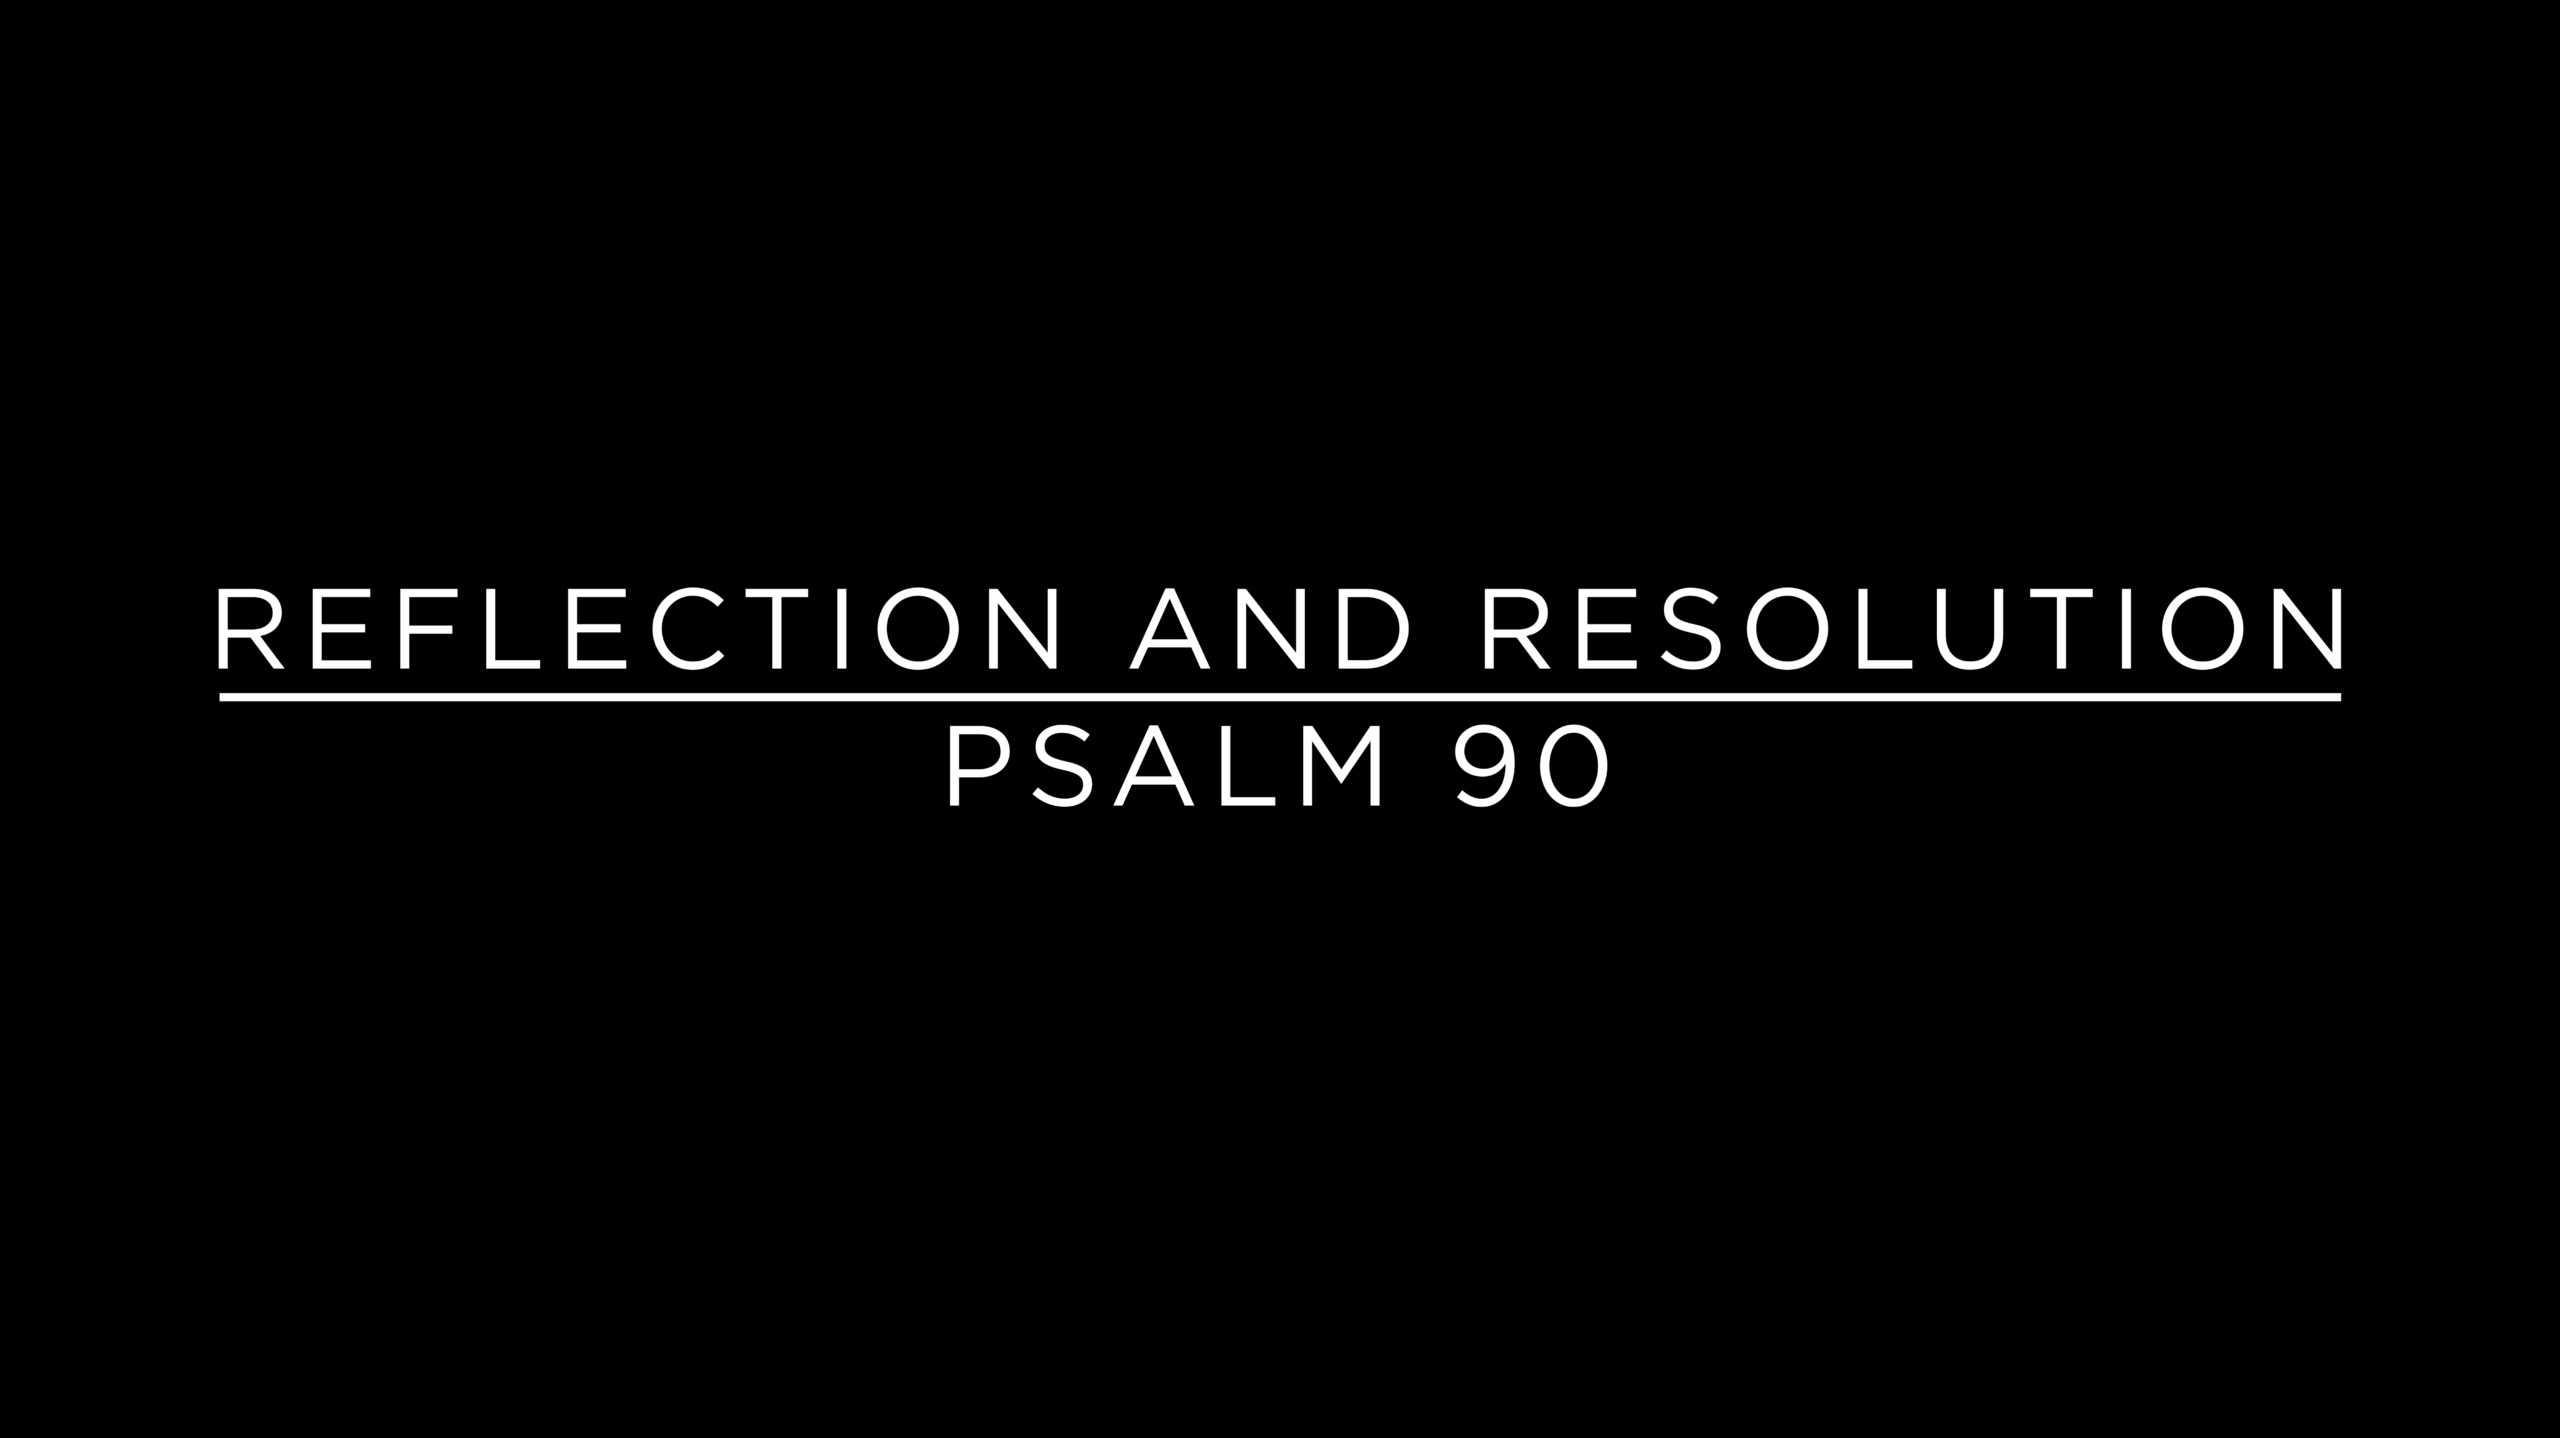 Reflection and Resolution